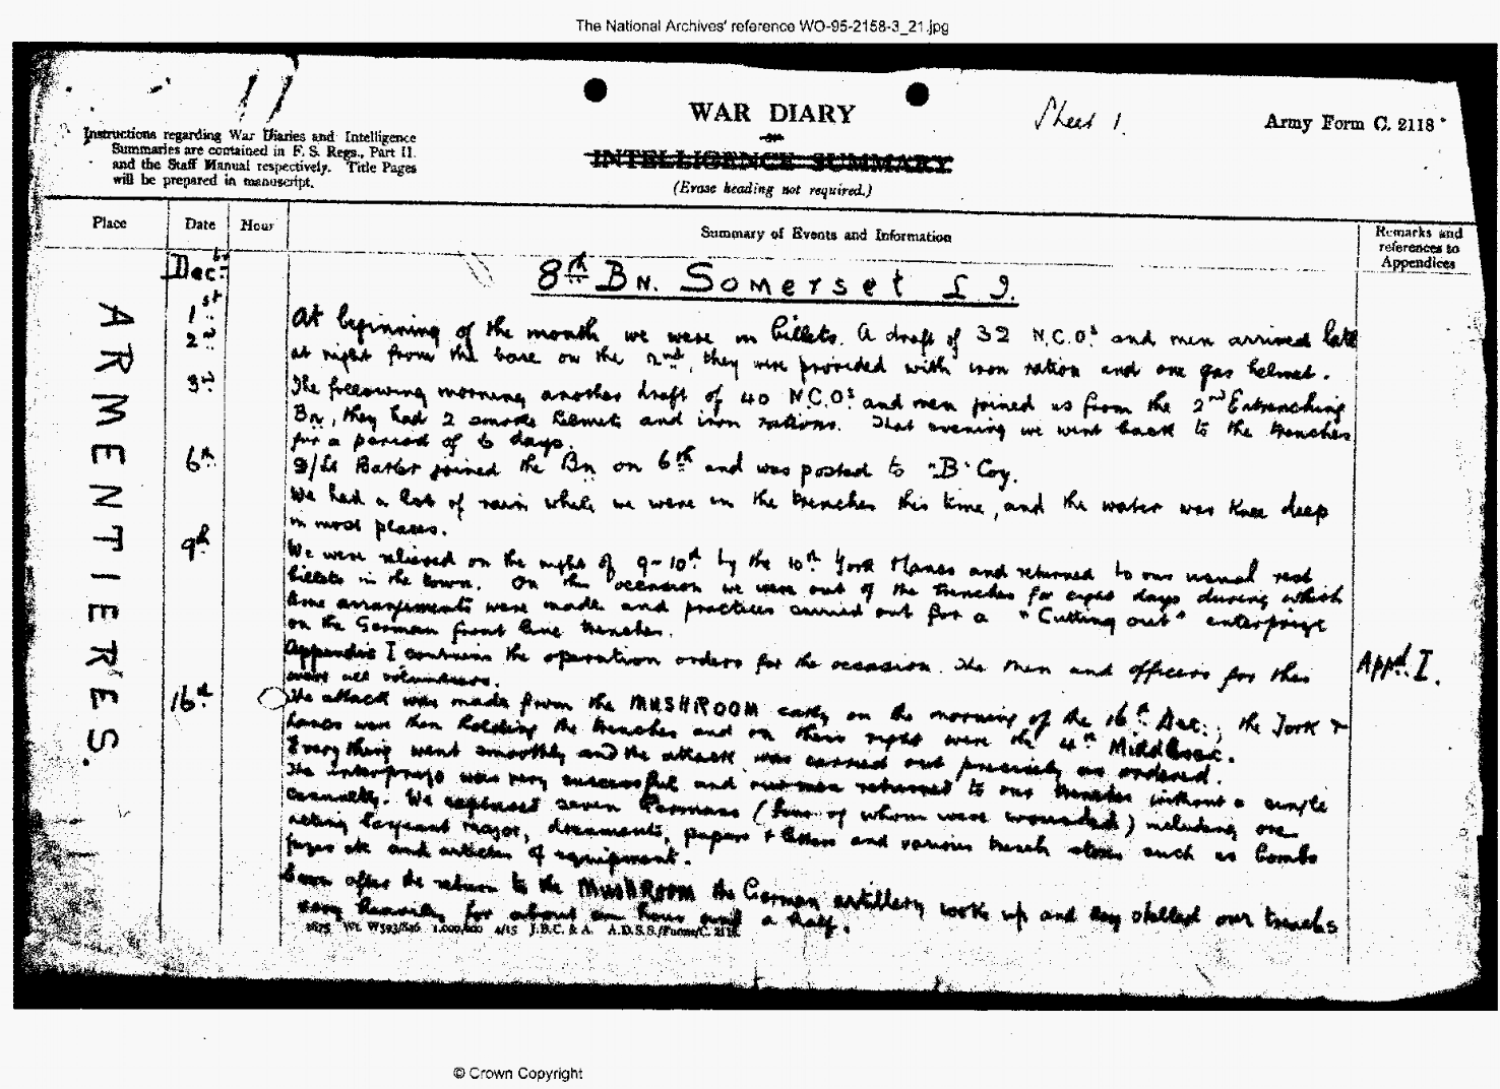 Extract from the War Diary of the 8th Battalion of the Somerset Light Infantry